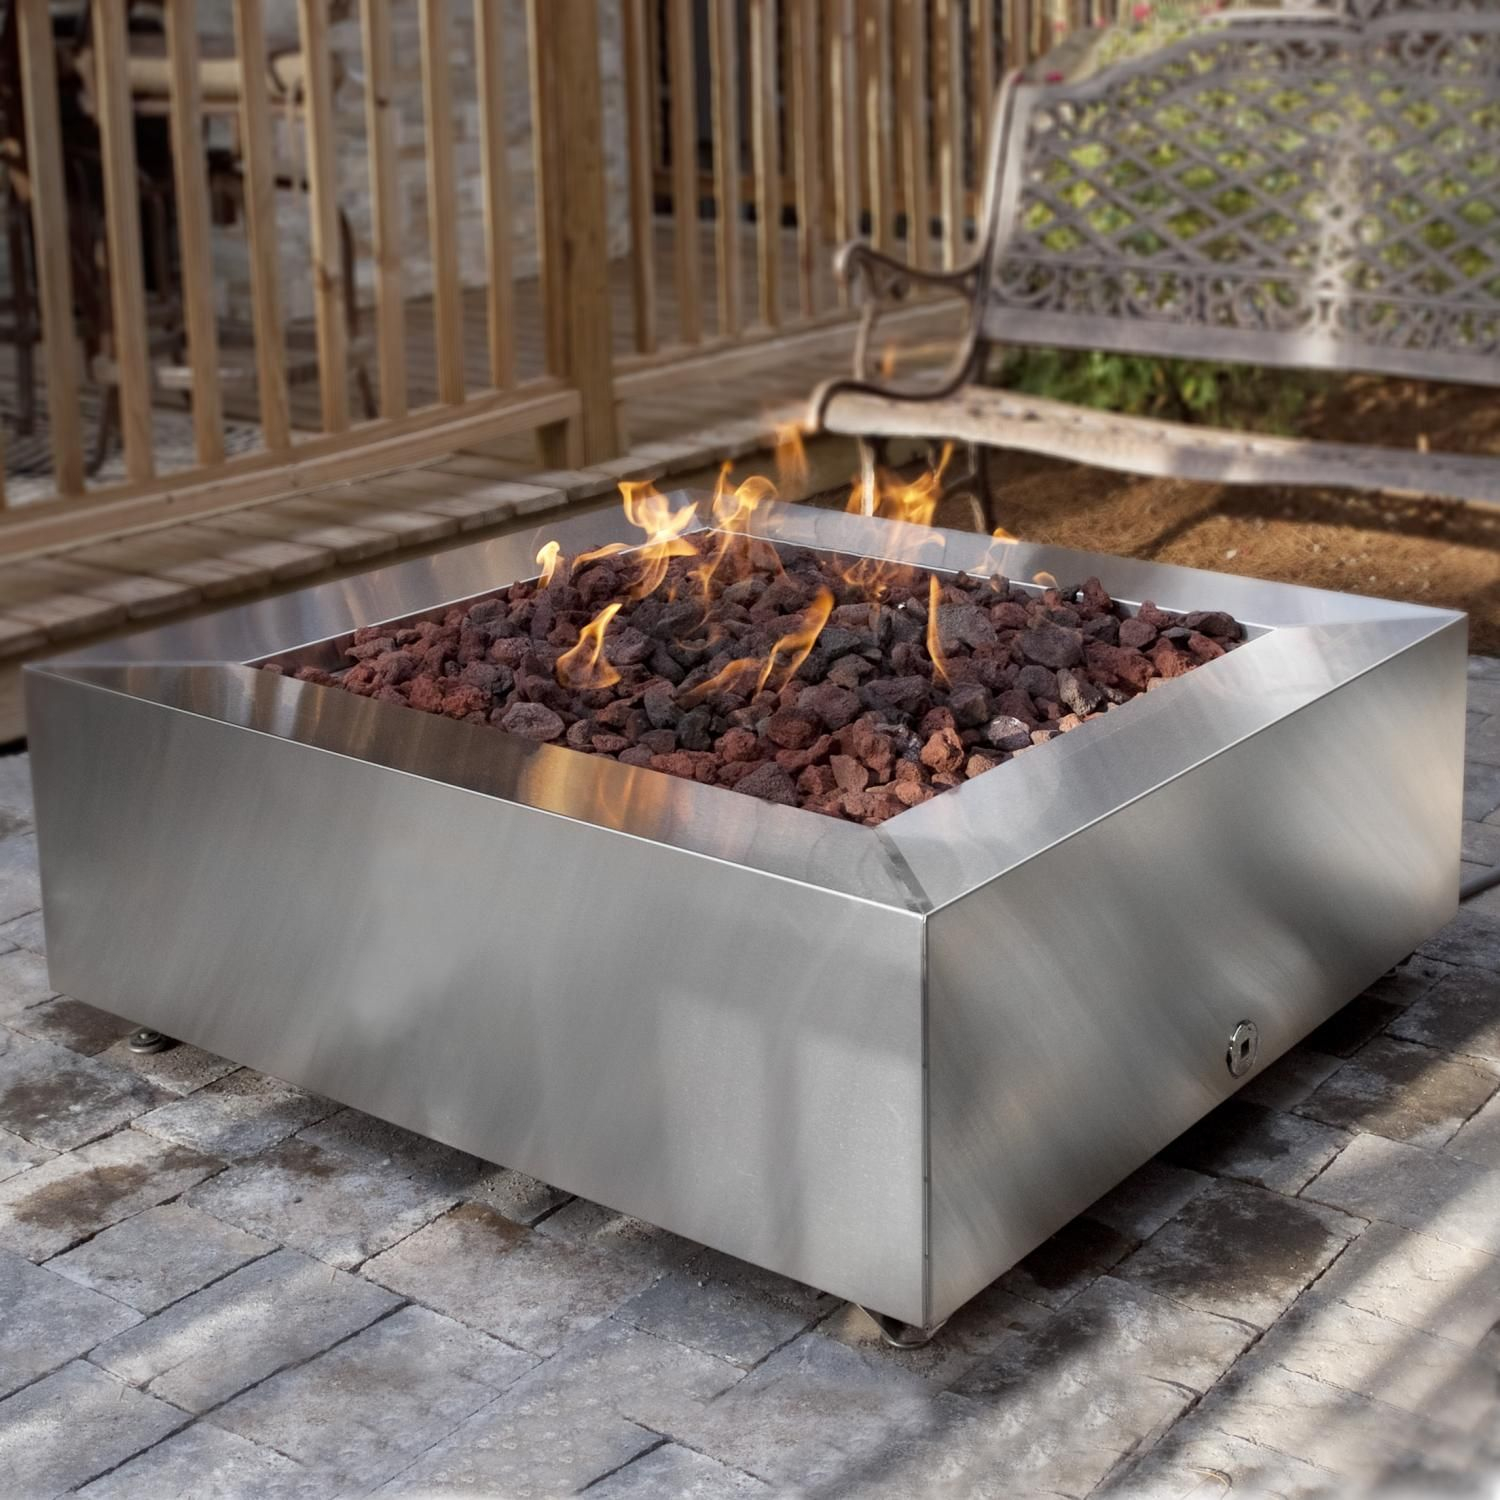 Bbqguys 42 Inch Stainless Steel Square Fire Pit Natural Gas throughout sizing 1500 X 1500